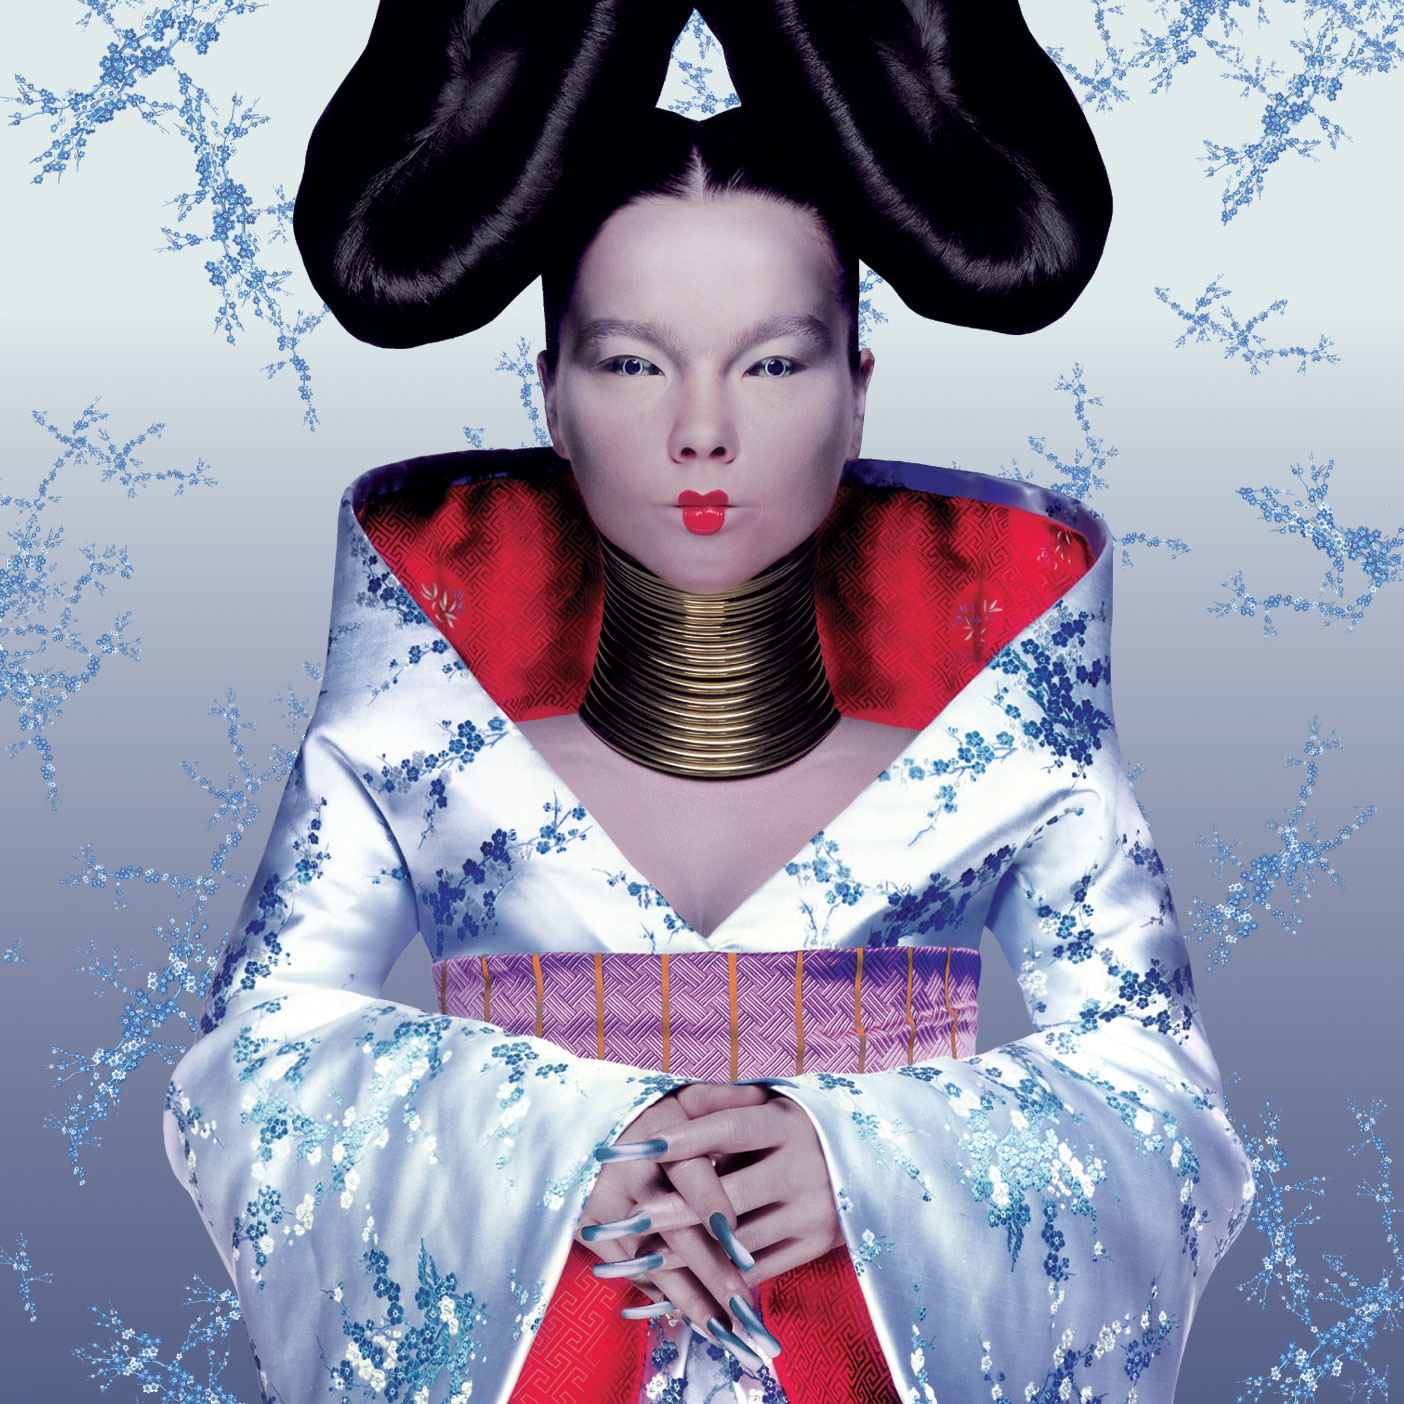 bjork homogenic large la The 20 Best Sci Fi Albums: From Misfits to Radiohead